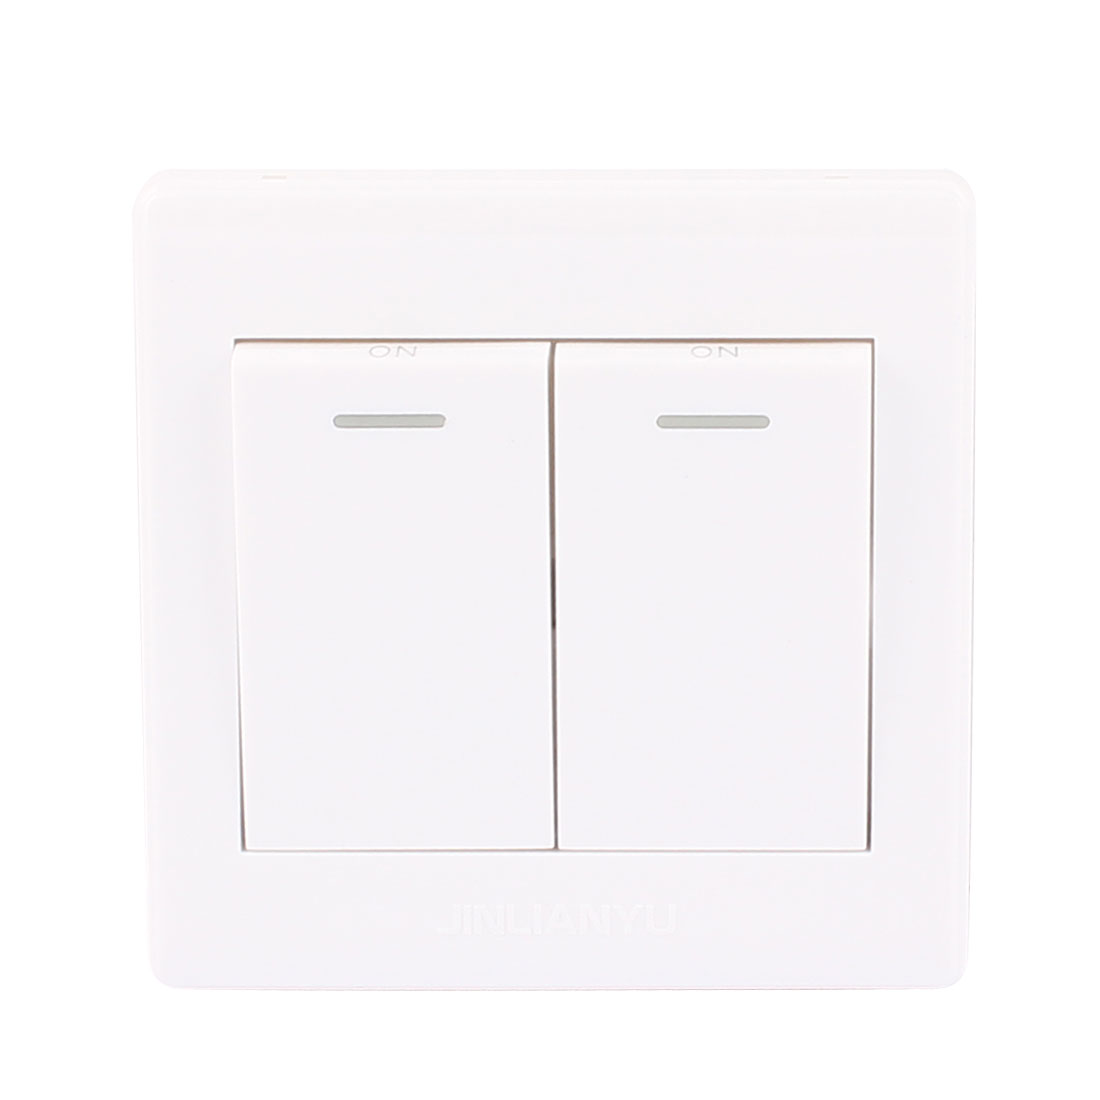 AC 250V 10A 1 Gang 2 Way On/Off Dual Press Button Switch Wall Plate